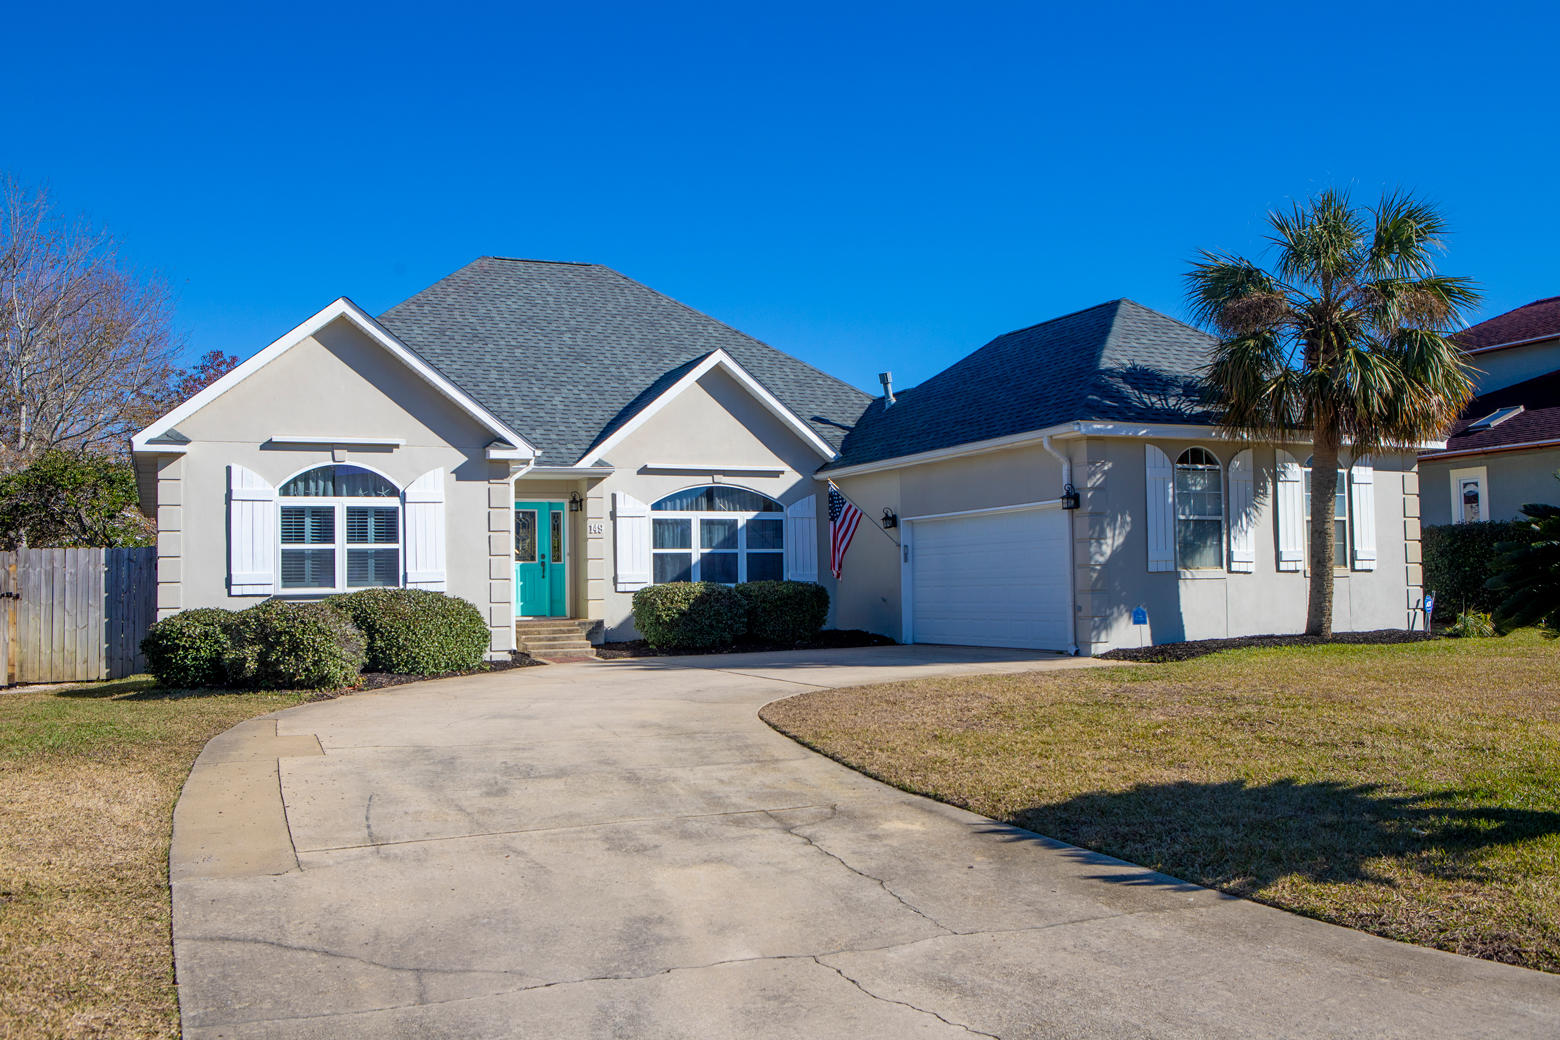 Photo of home for sale at 149 Shoreline, Mary Esther FL